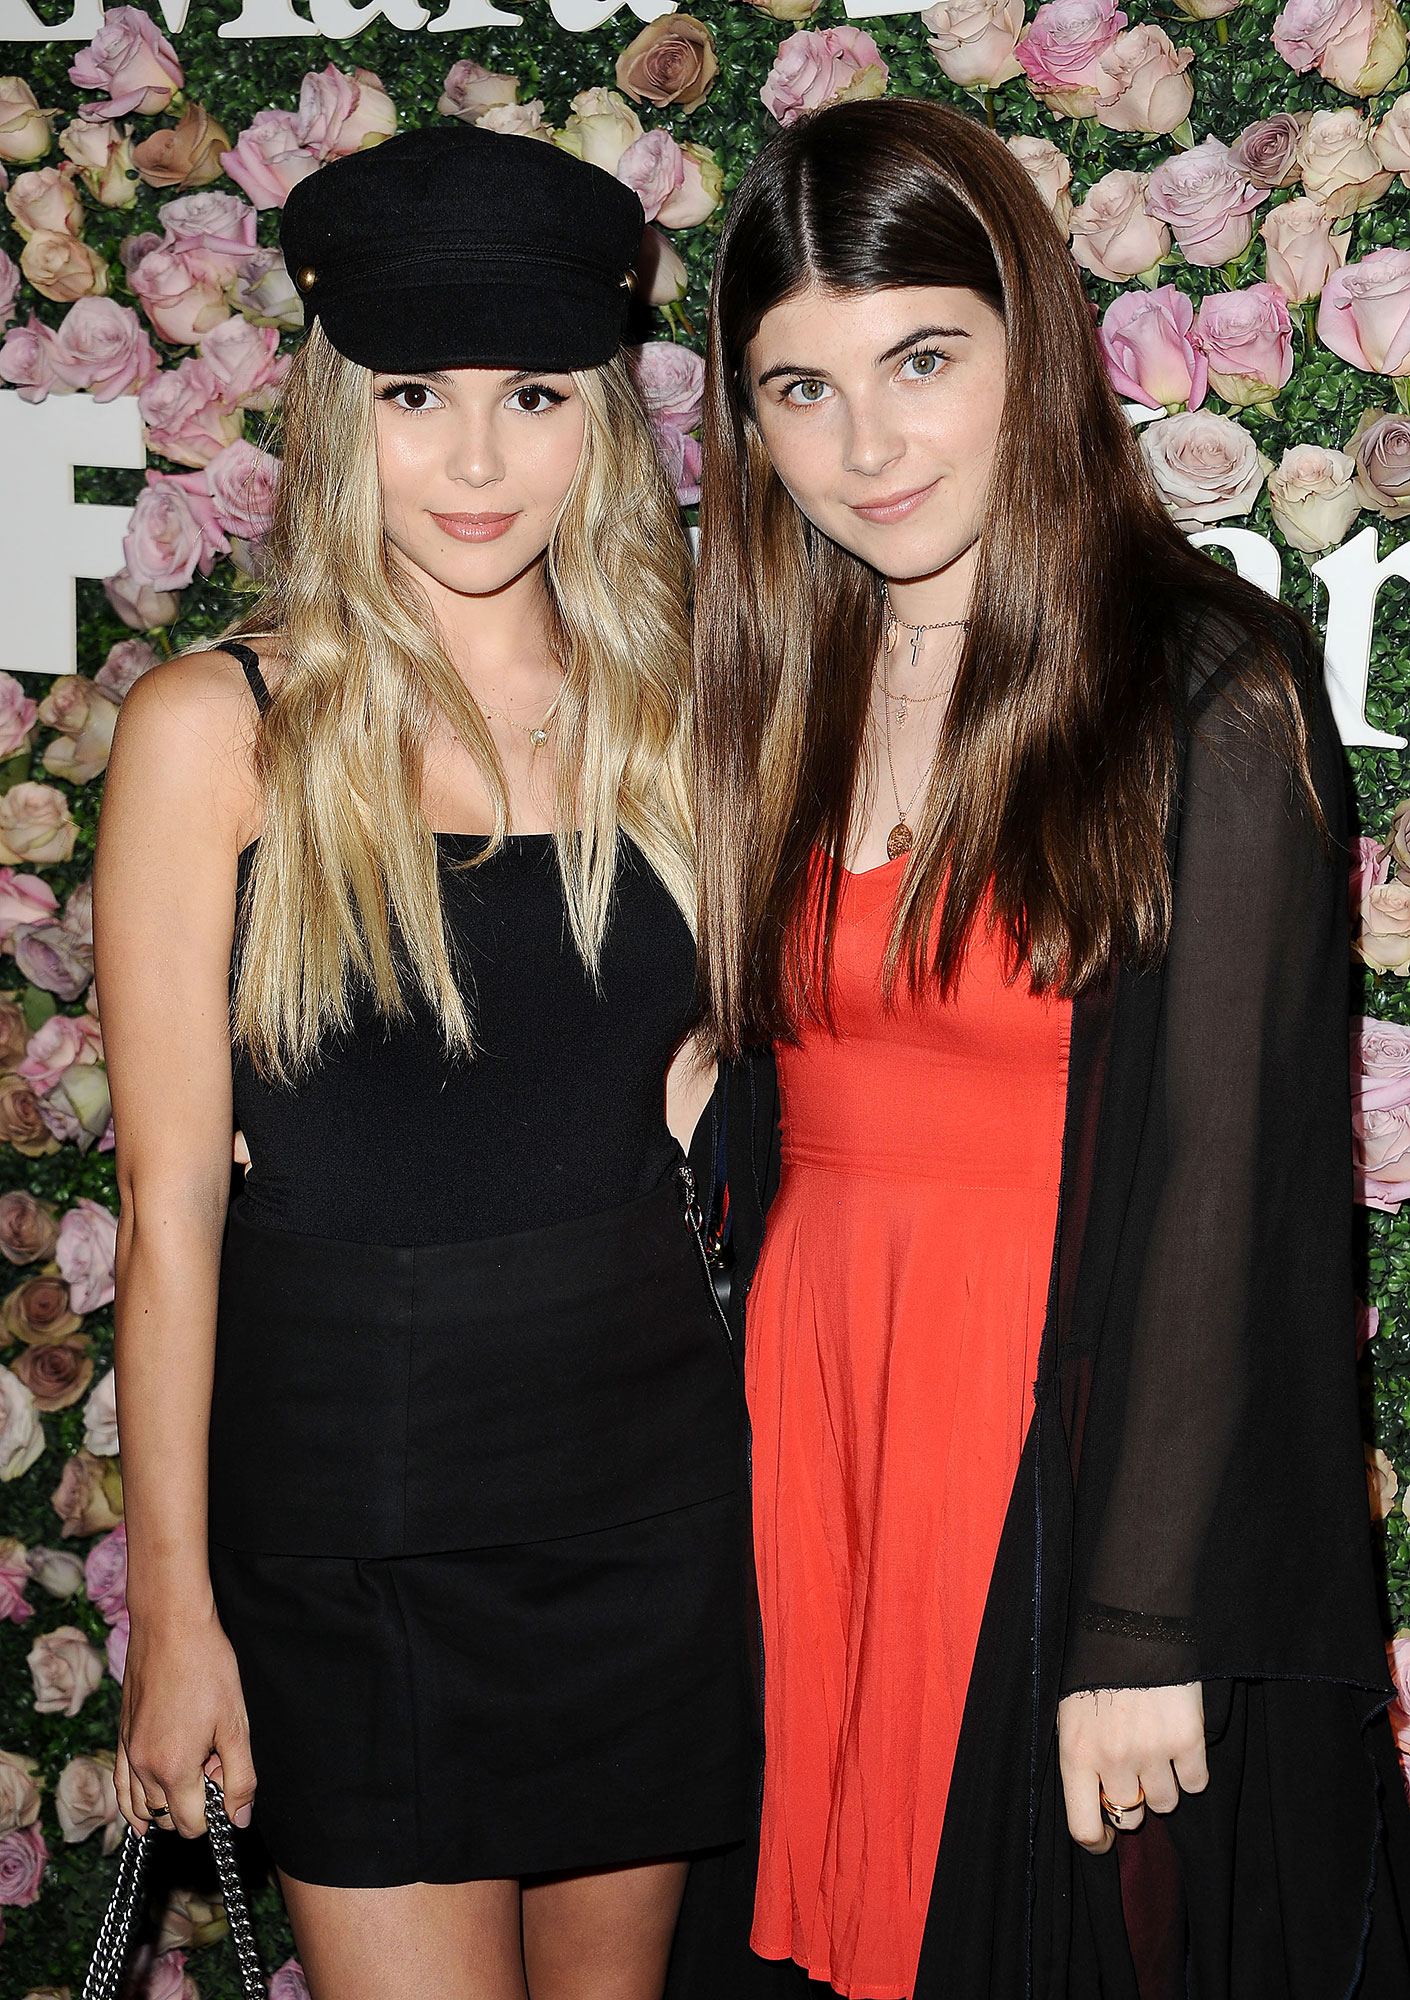 Lori Loughlin's Daughters Olivia Jade and Bella Giannuli Won't Return to USC: Report - Olivia Jade Giannulli and Bella Giannulli attend Max Mara and Vanity Fair's celebration of Women In Film's Face of the Future Award recipient, Zoey Deutch at Chateau Marmont on June 12, 2017 in Los Angeles, California.